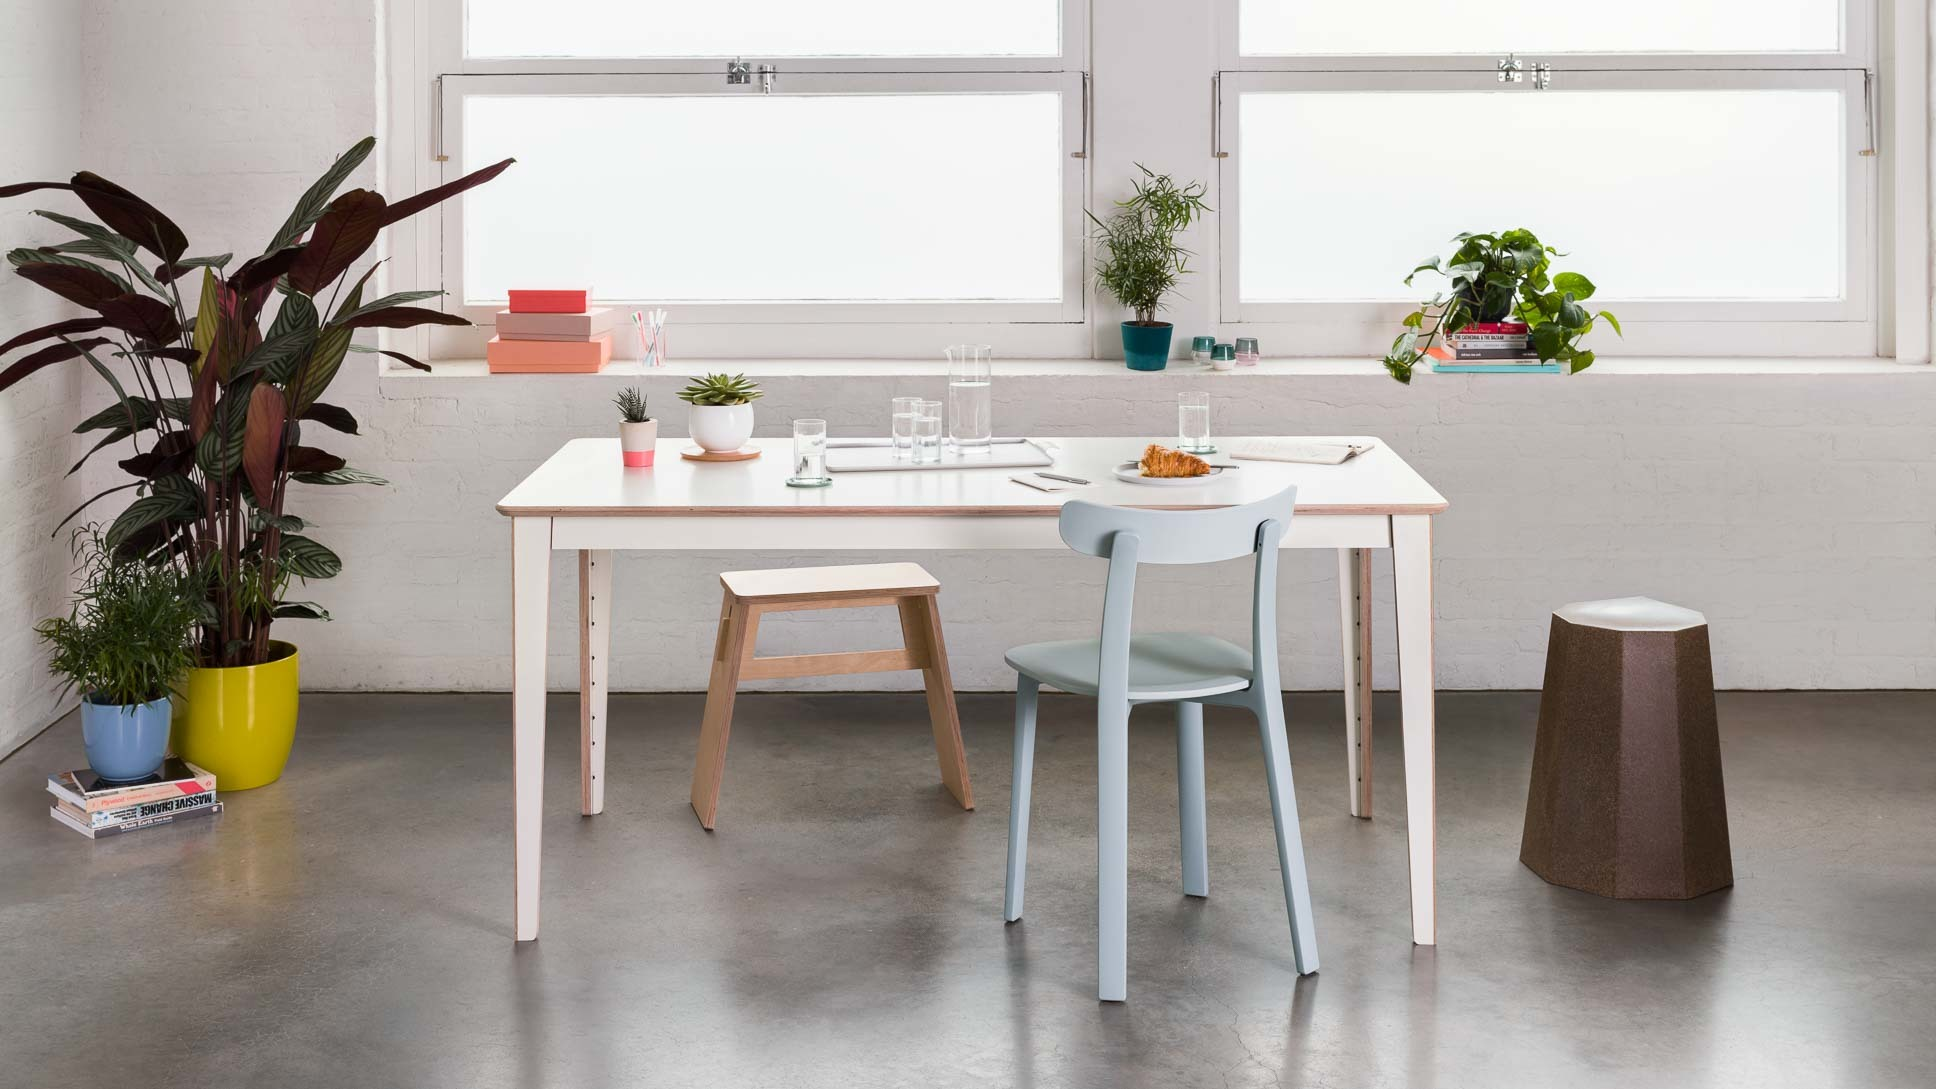 opendesk_furniture_unit-table_product-page_gallery-image-Scene2-6332_jw-edit.jpg